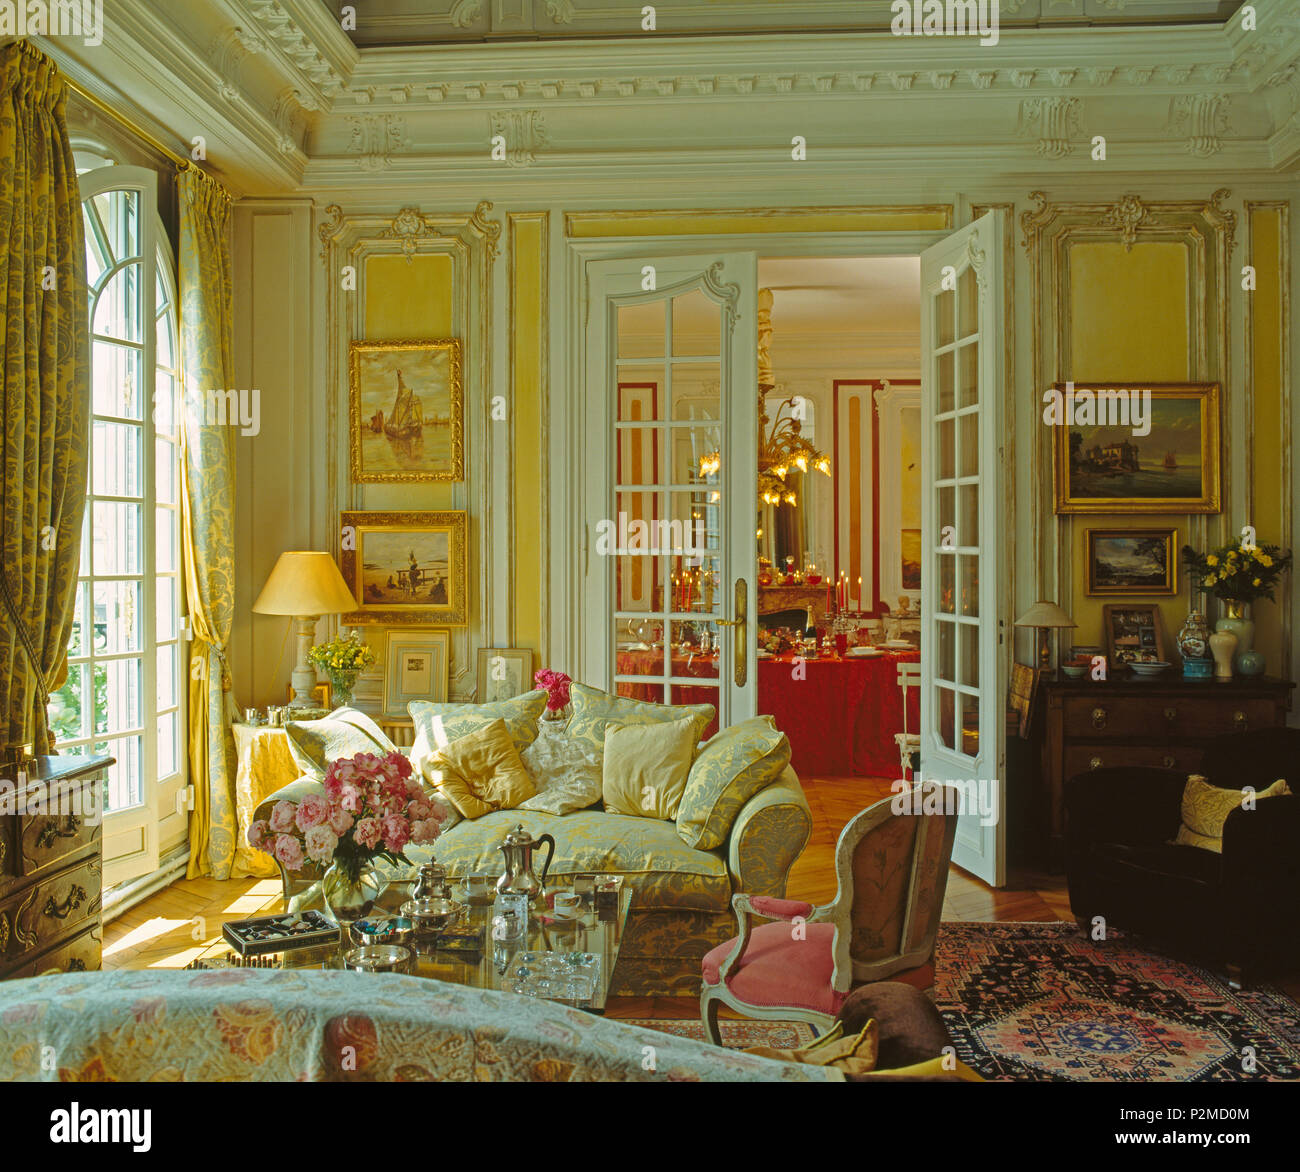 Glazed Double Doors In Elegant Drawing Room In Paris Apartment With Cream Sofa And Antique Chair Stock Photo Alamy